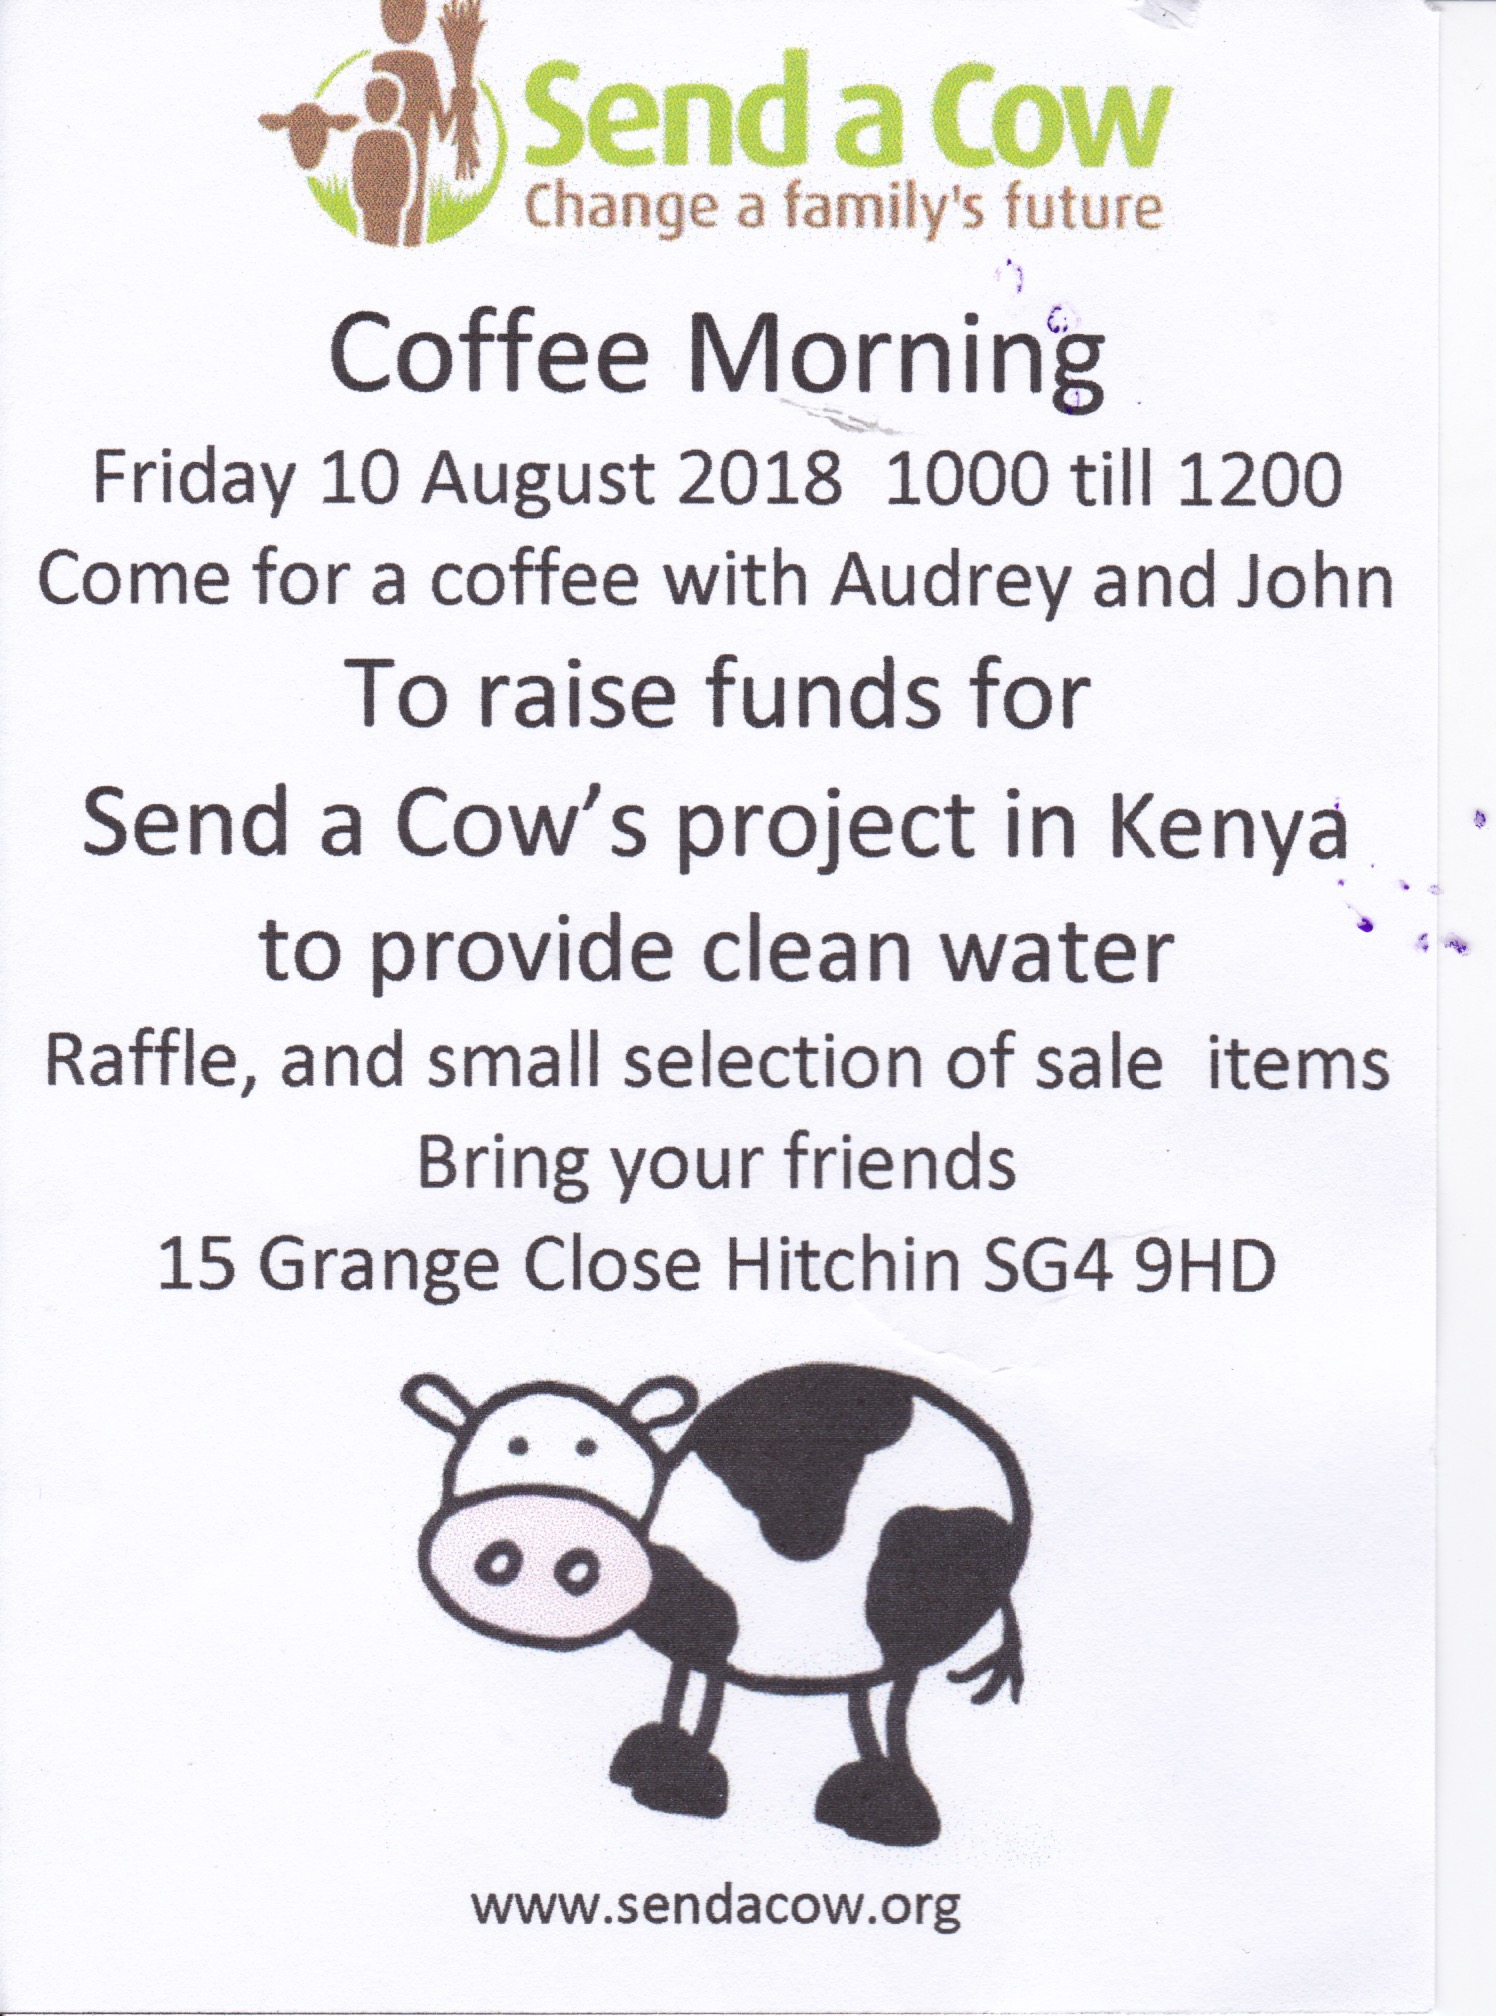 Send a Cow Coffee Morning  - 12th August 2018